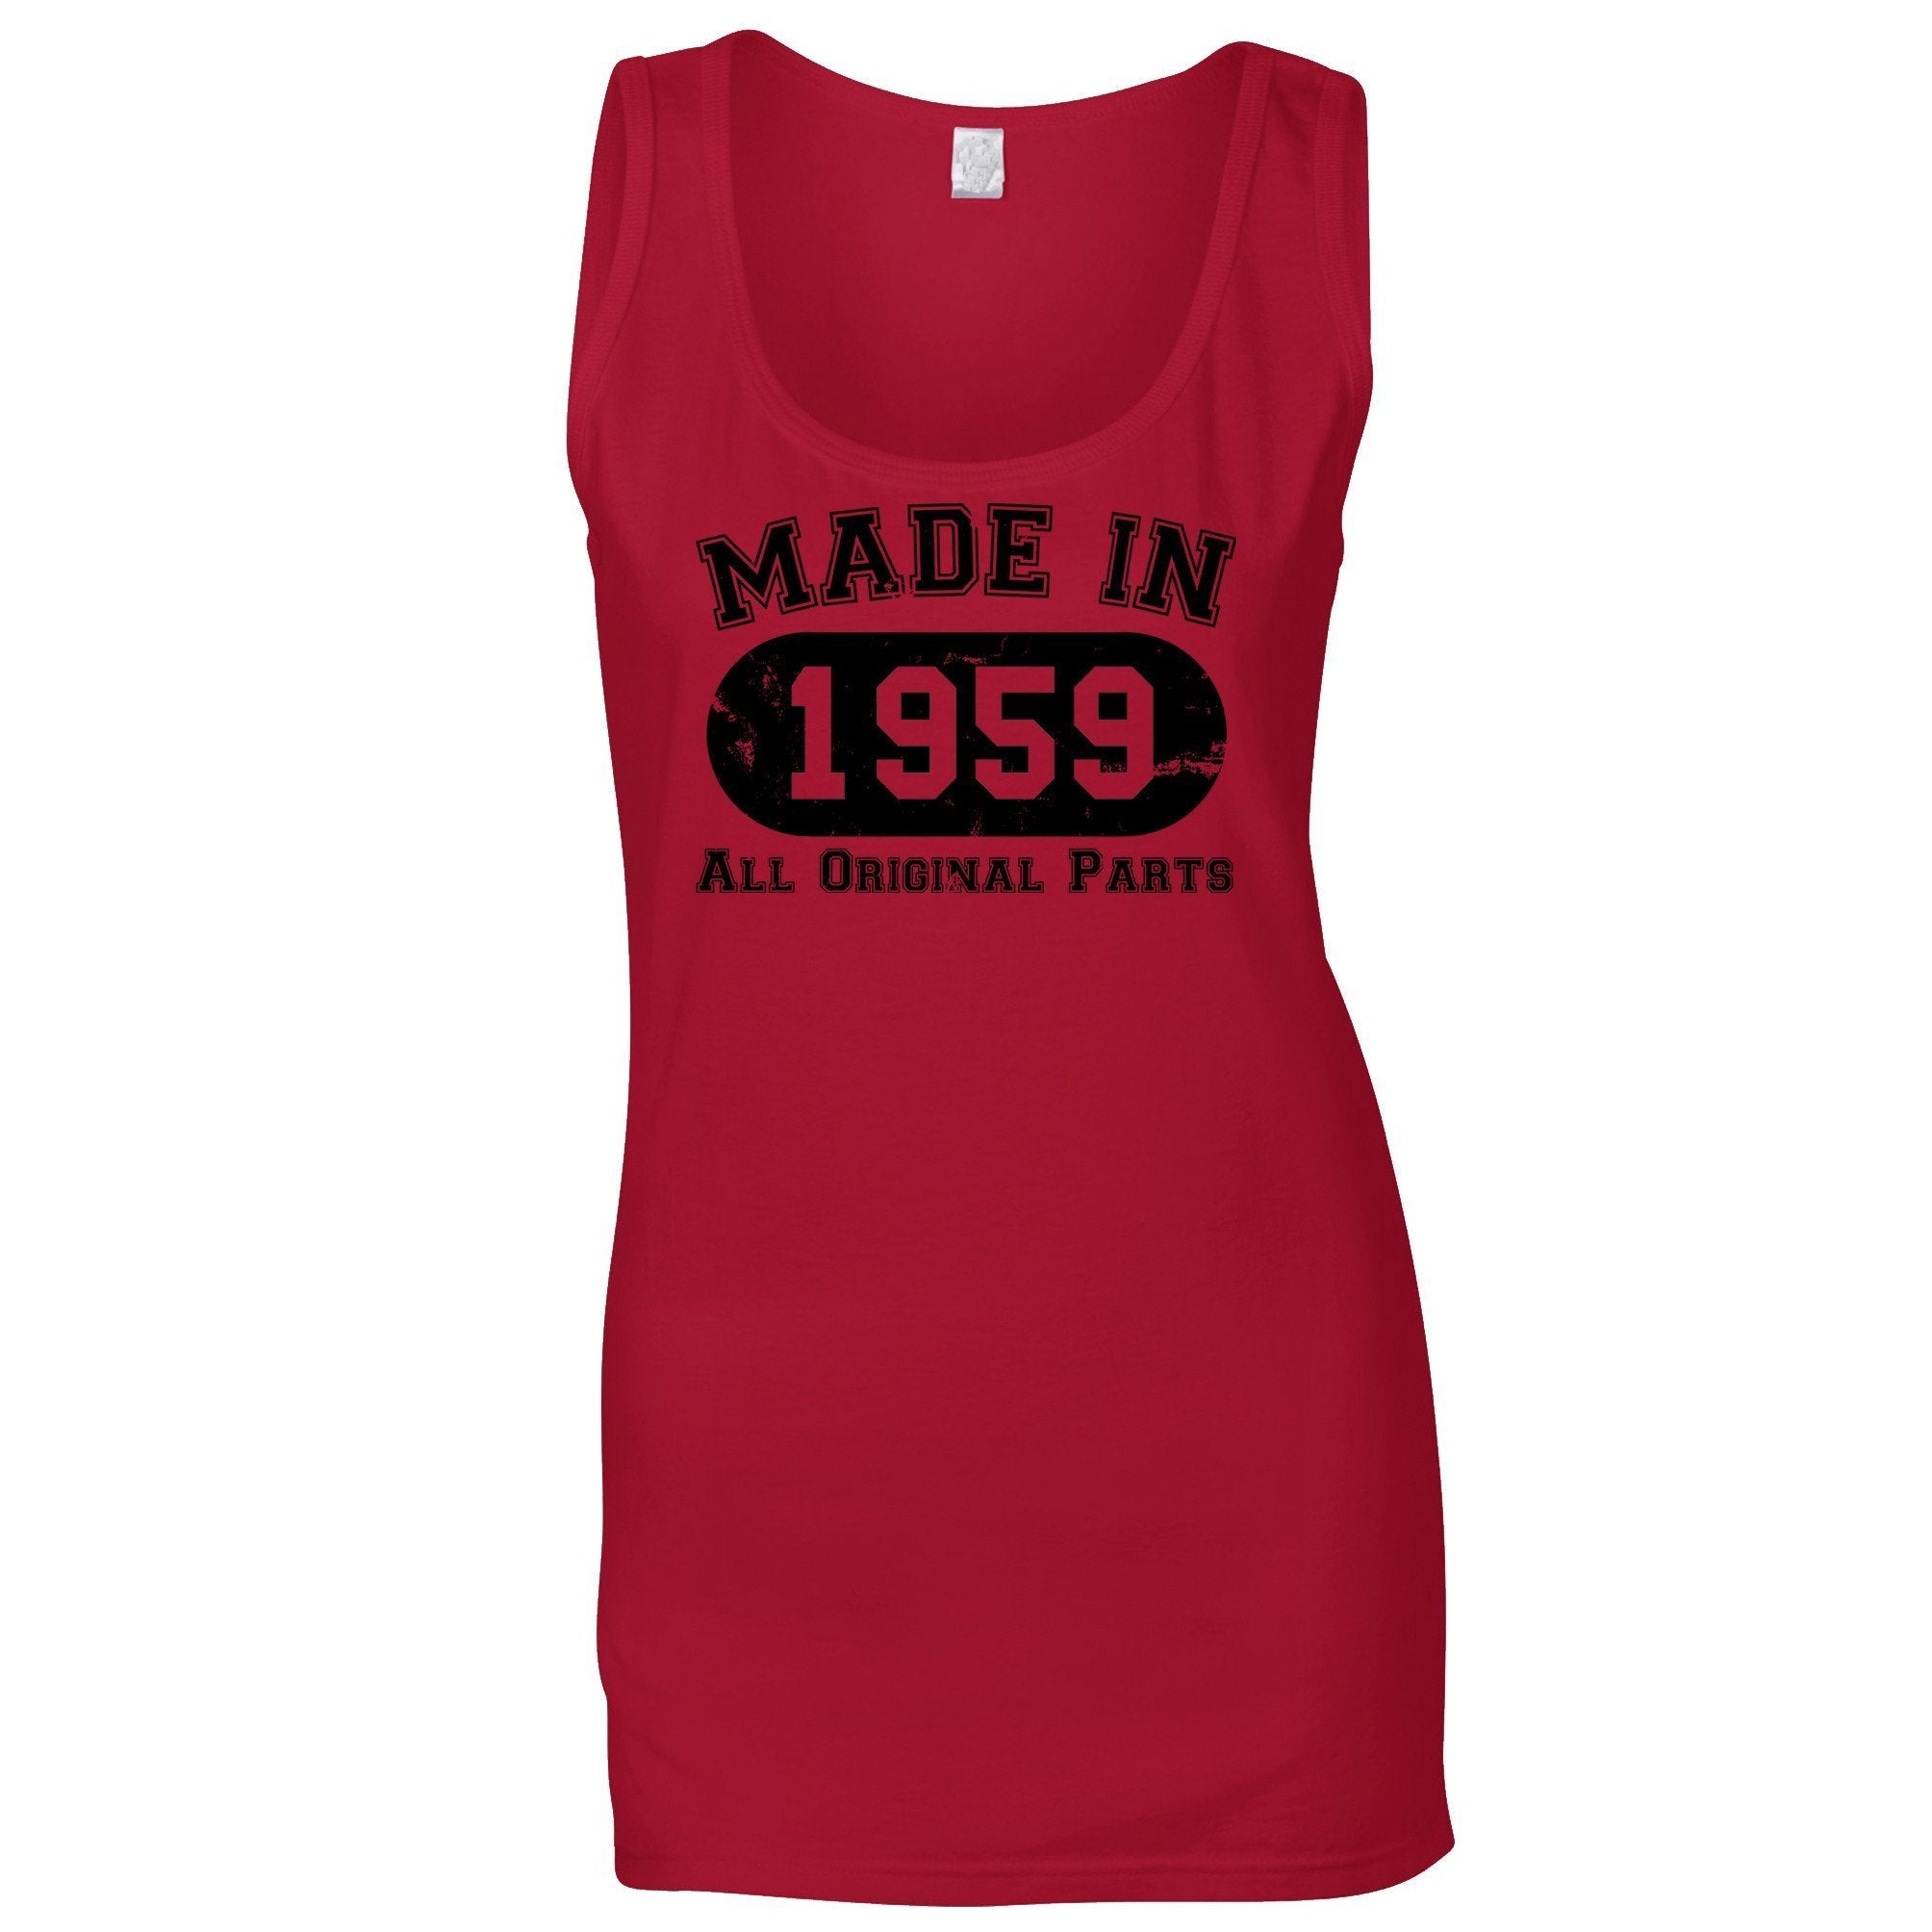 Made in 1959 All Original Parts Womens Vest [Distressed]